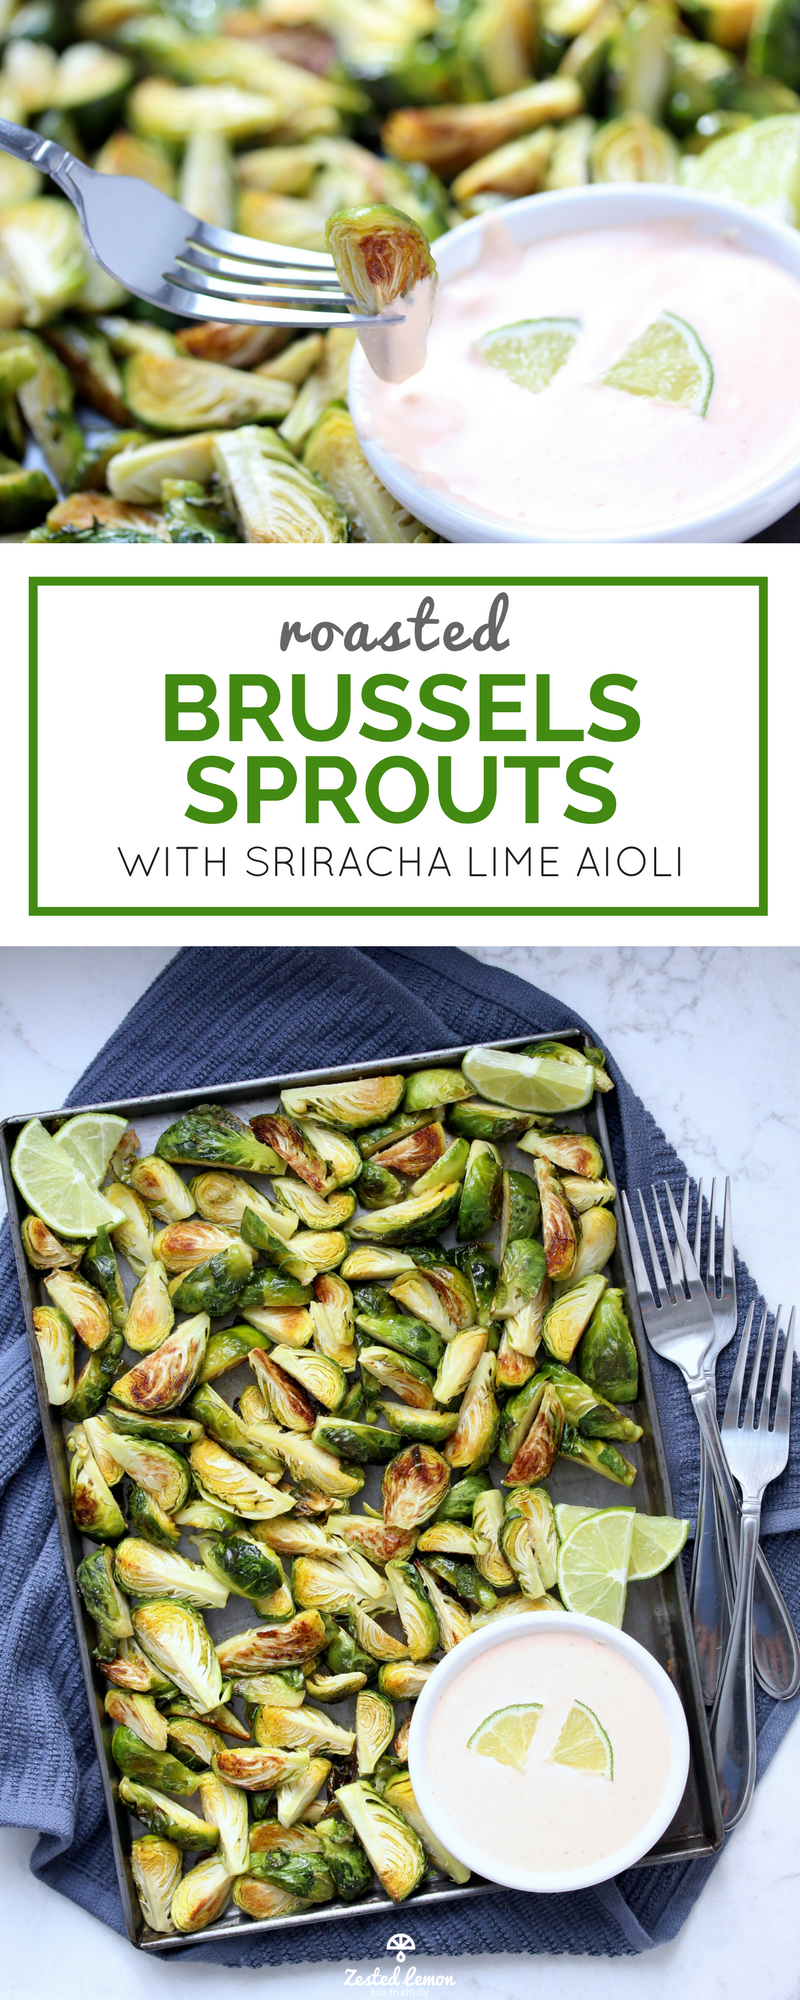 Roasted Brussels Sprouts with Sriracha Lime Aioli